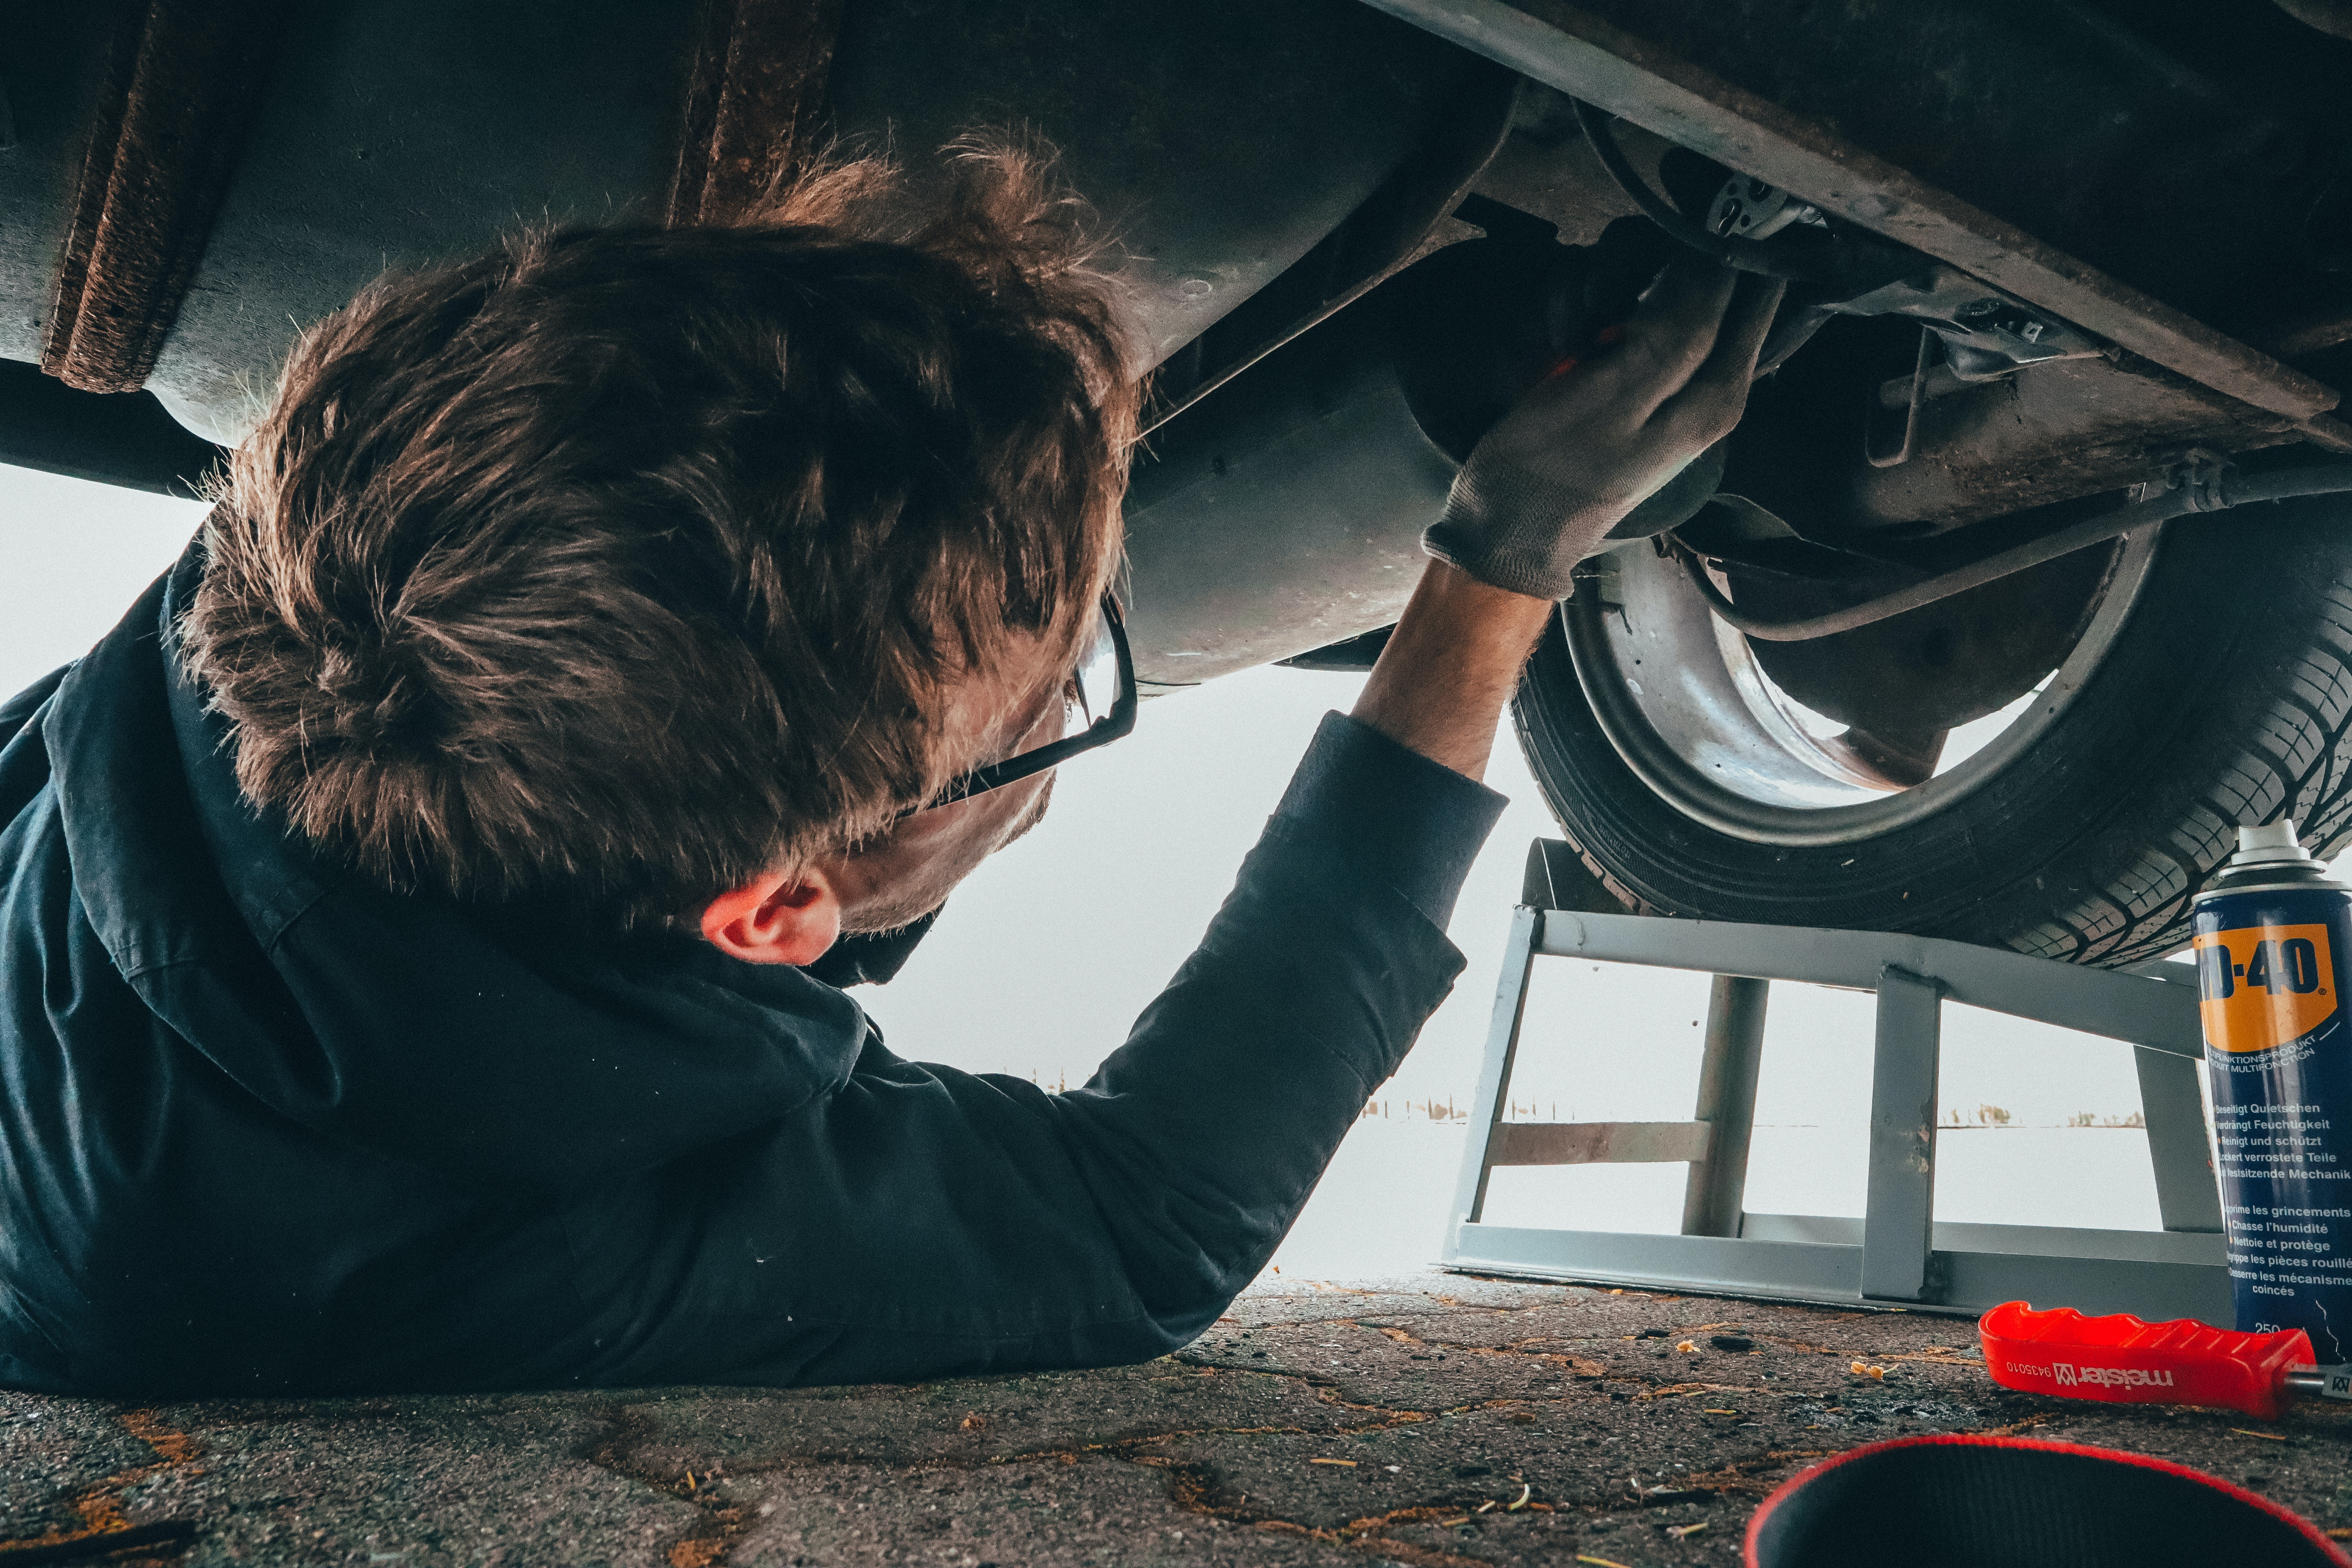 A Insider's Look at Car Care & Safety